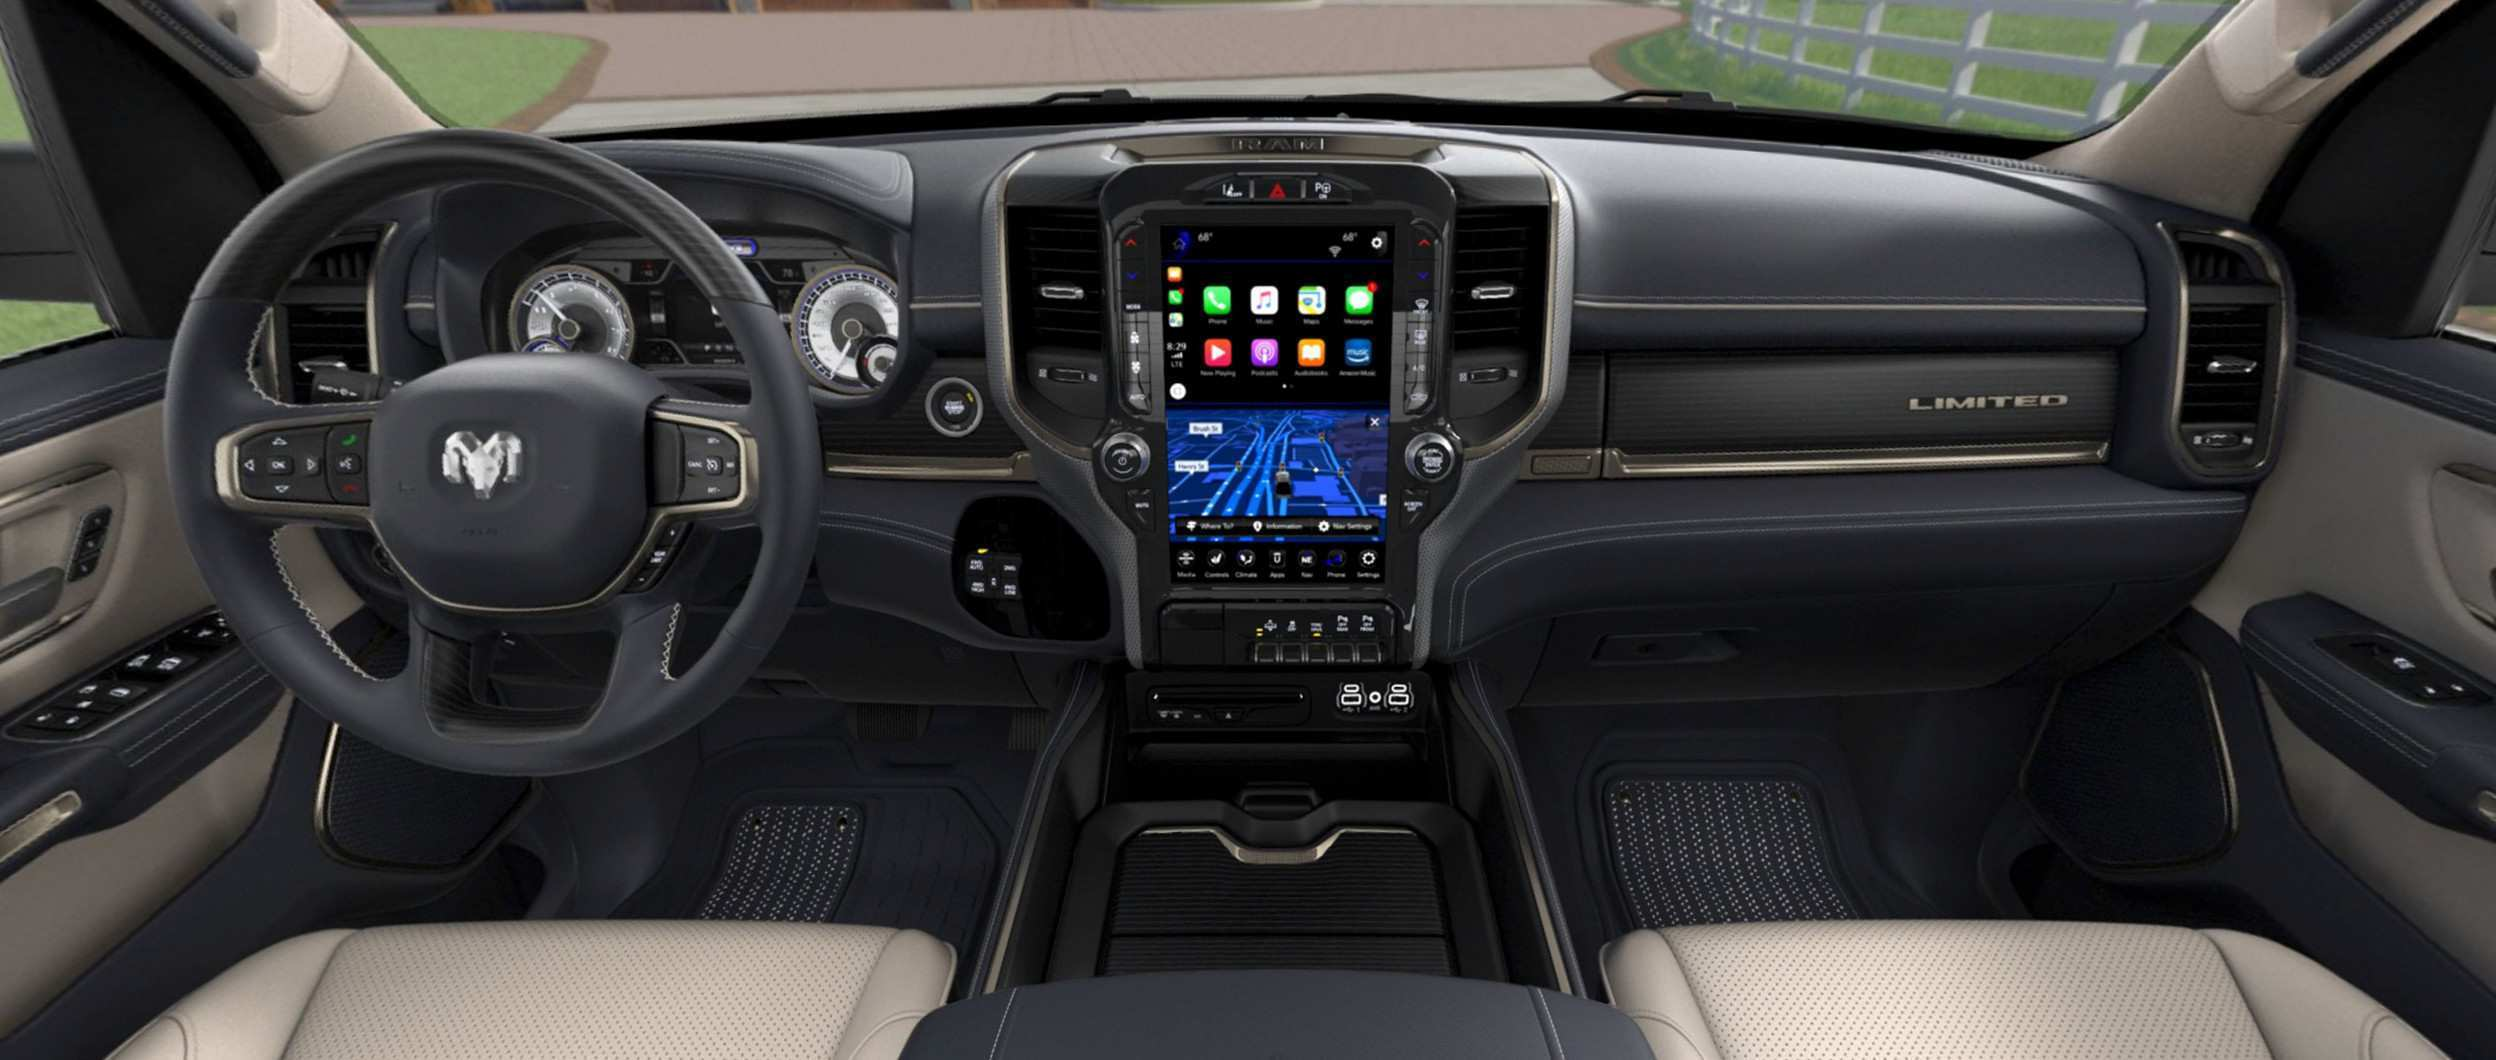 84 Best 2019 Dodge Interior Performance